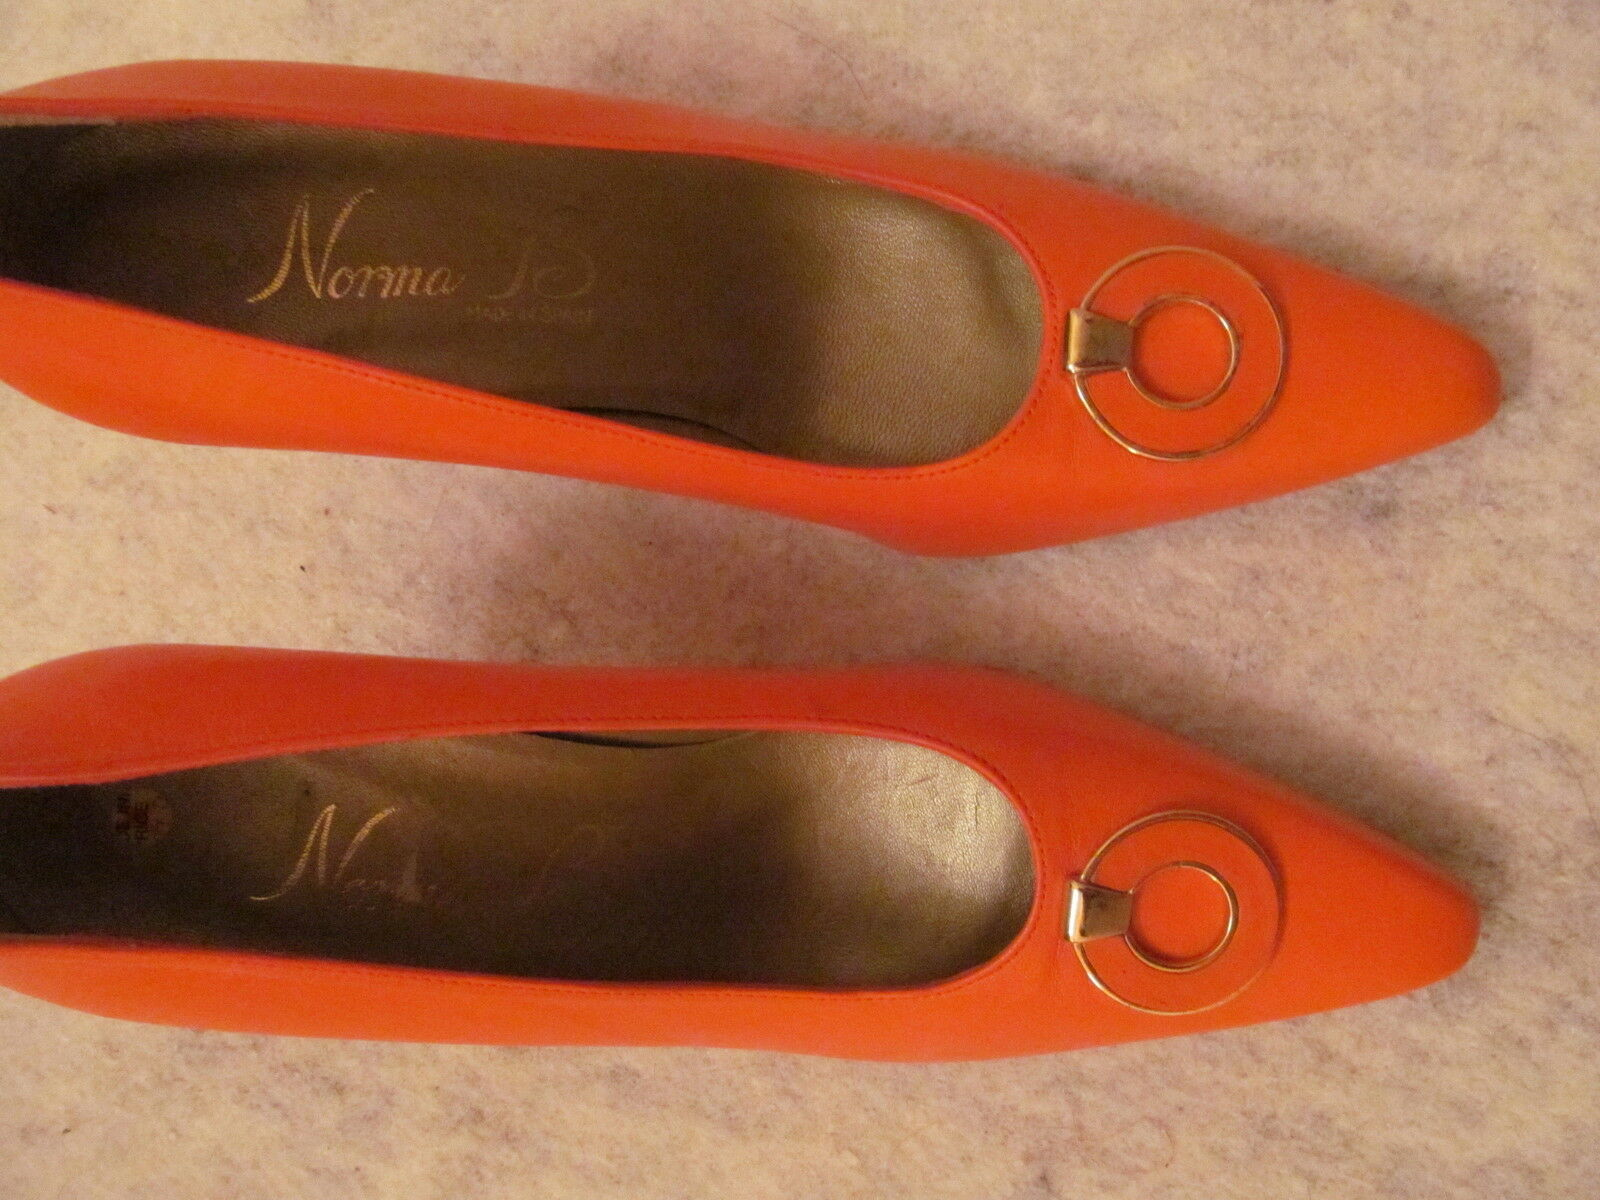 Vintage NORMA B bright orange art deco mod leather high heel shoes 6.5 NWOB